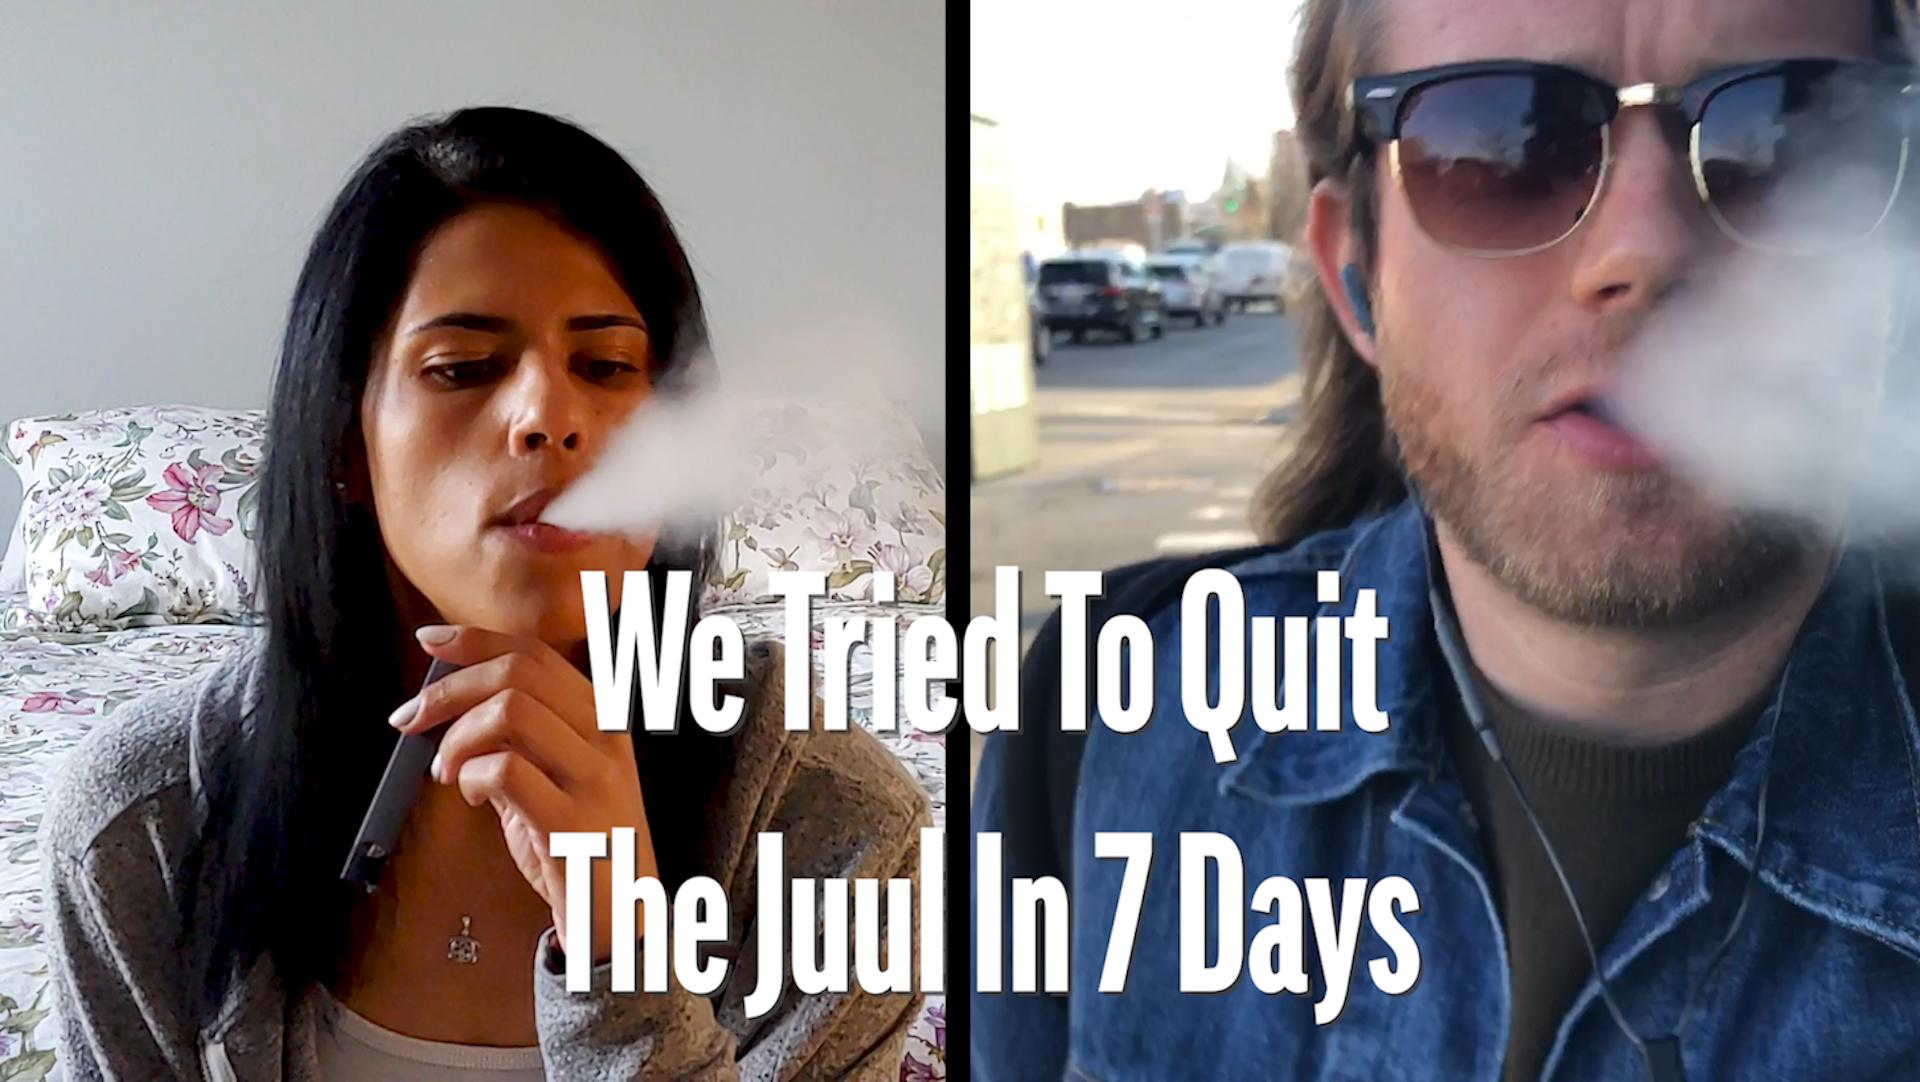 BuzzFeed Video - We Tried To Quit The Juul In 7 Days